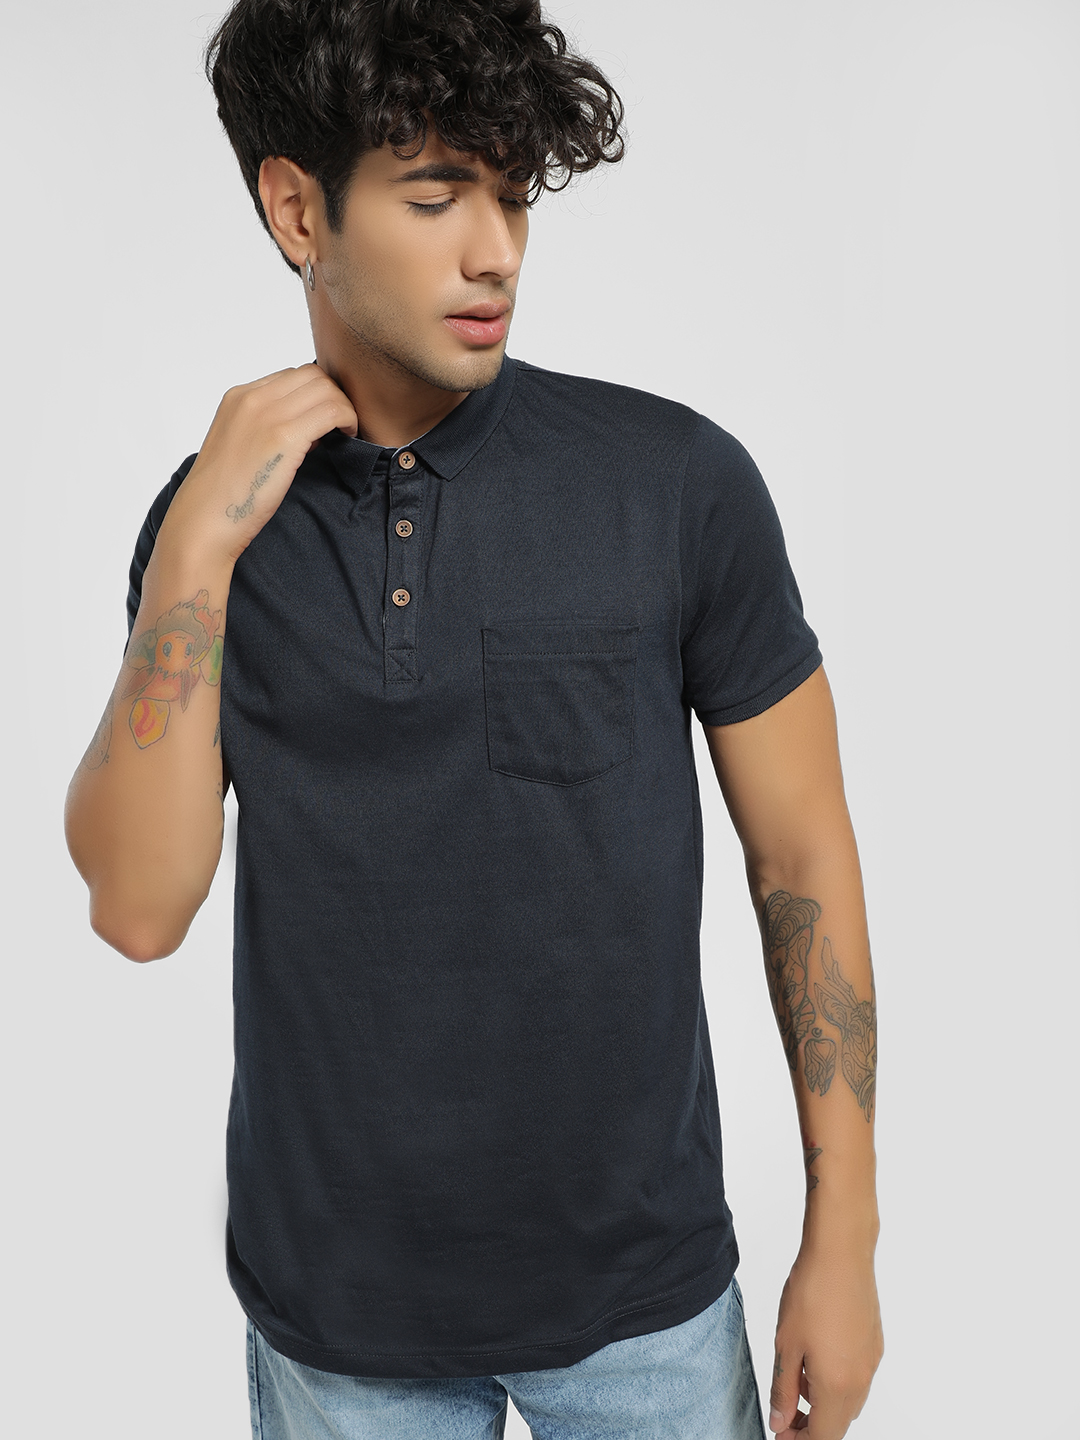 Brave Soul Navy Blue Basic Muscle Fit Polo Shirt 1